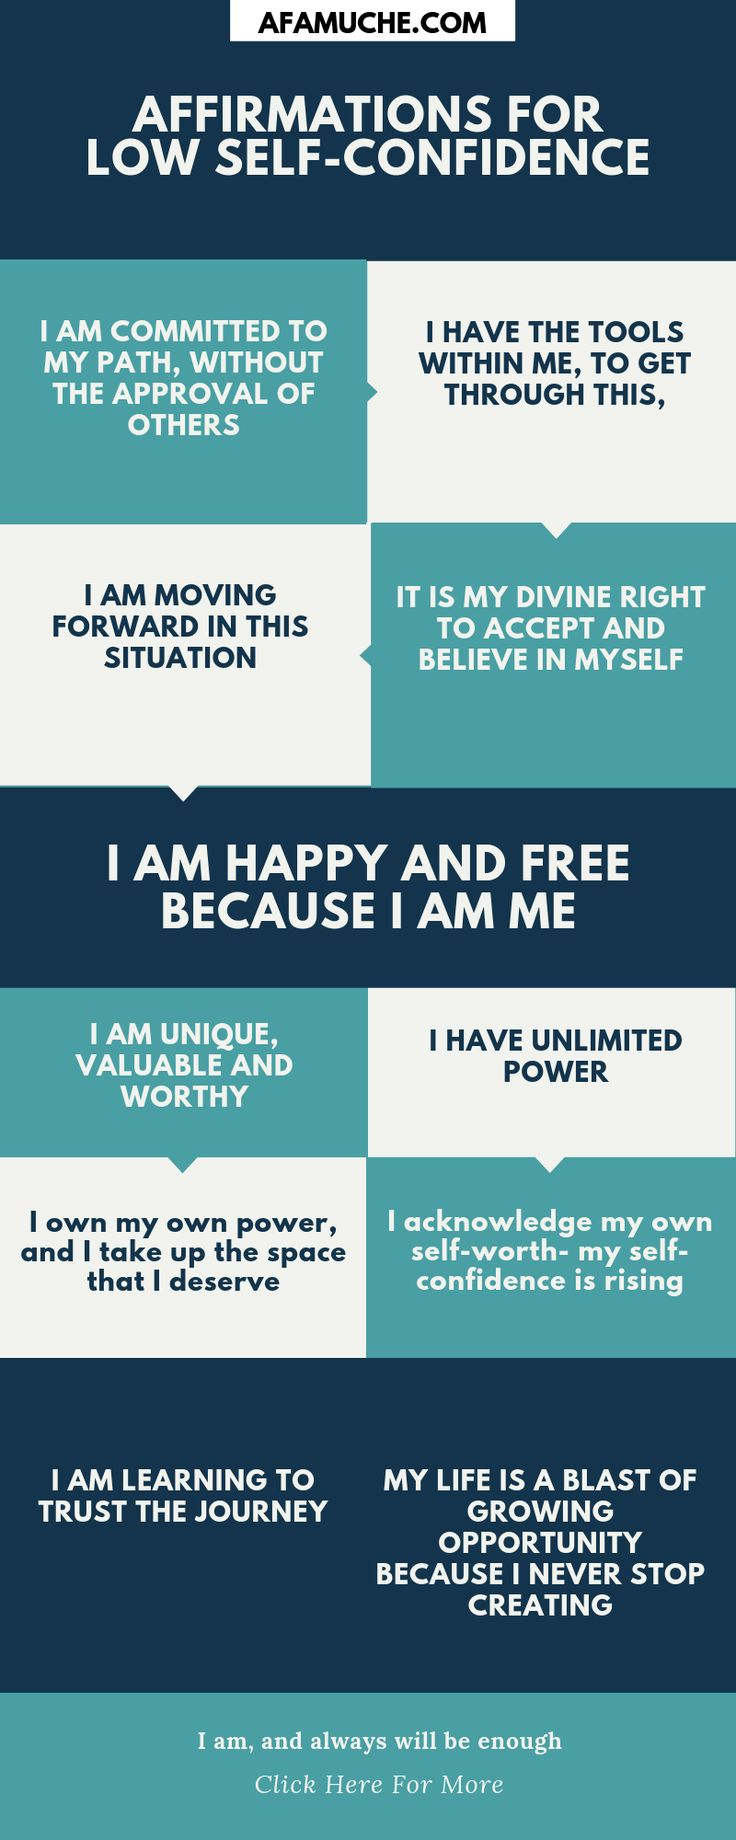 Affirmations for low self-confidence Infographic